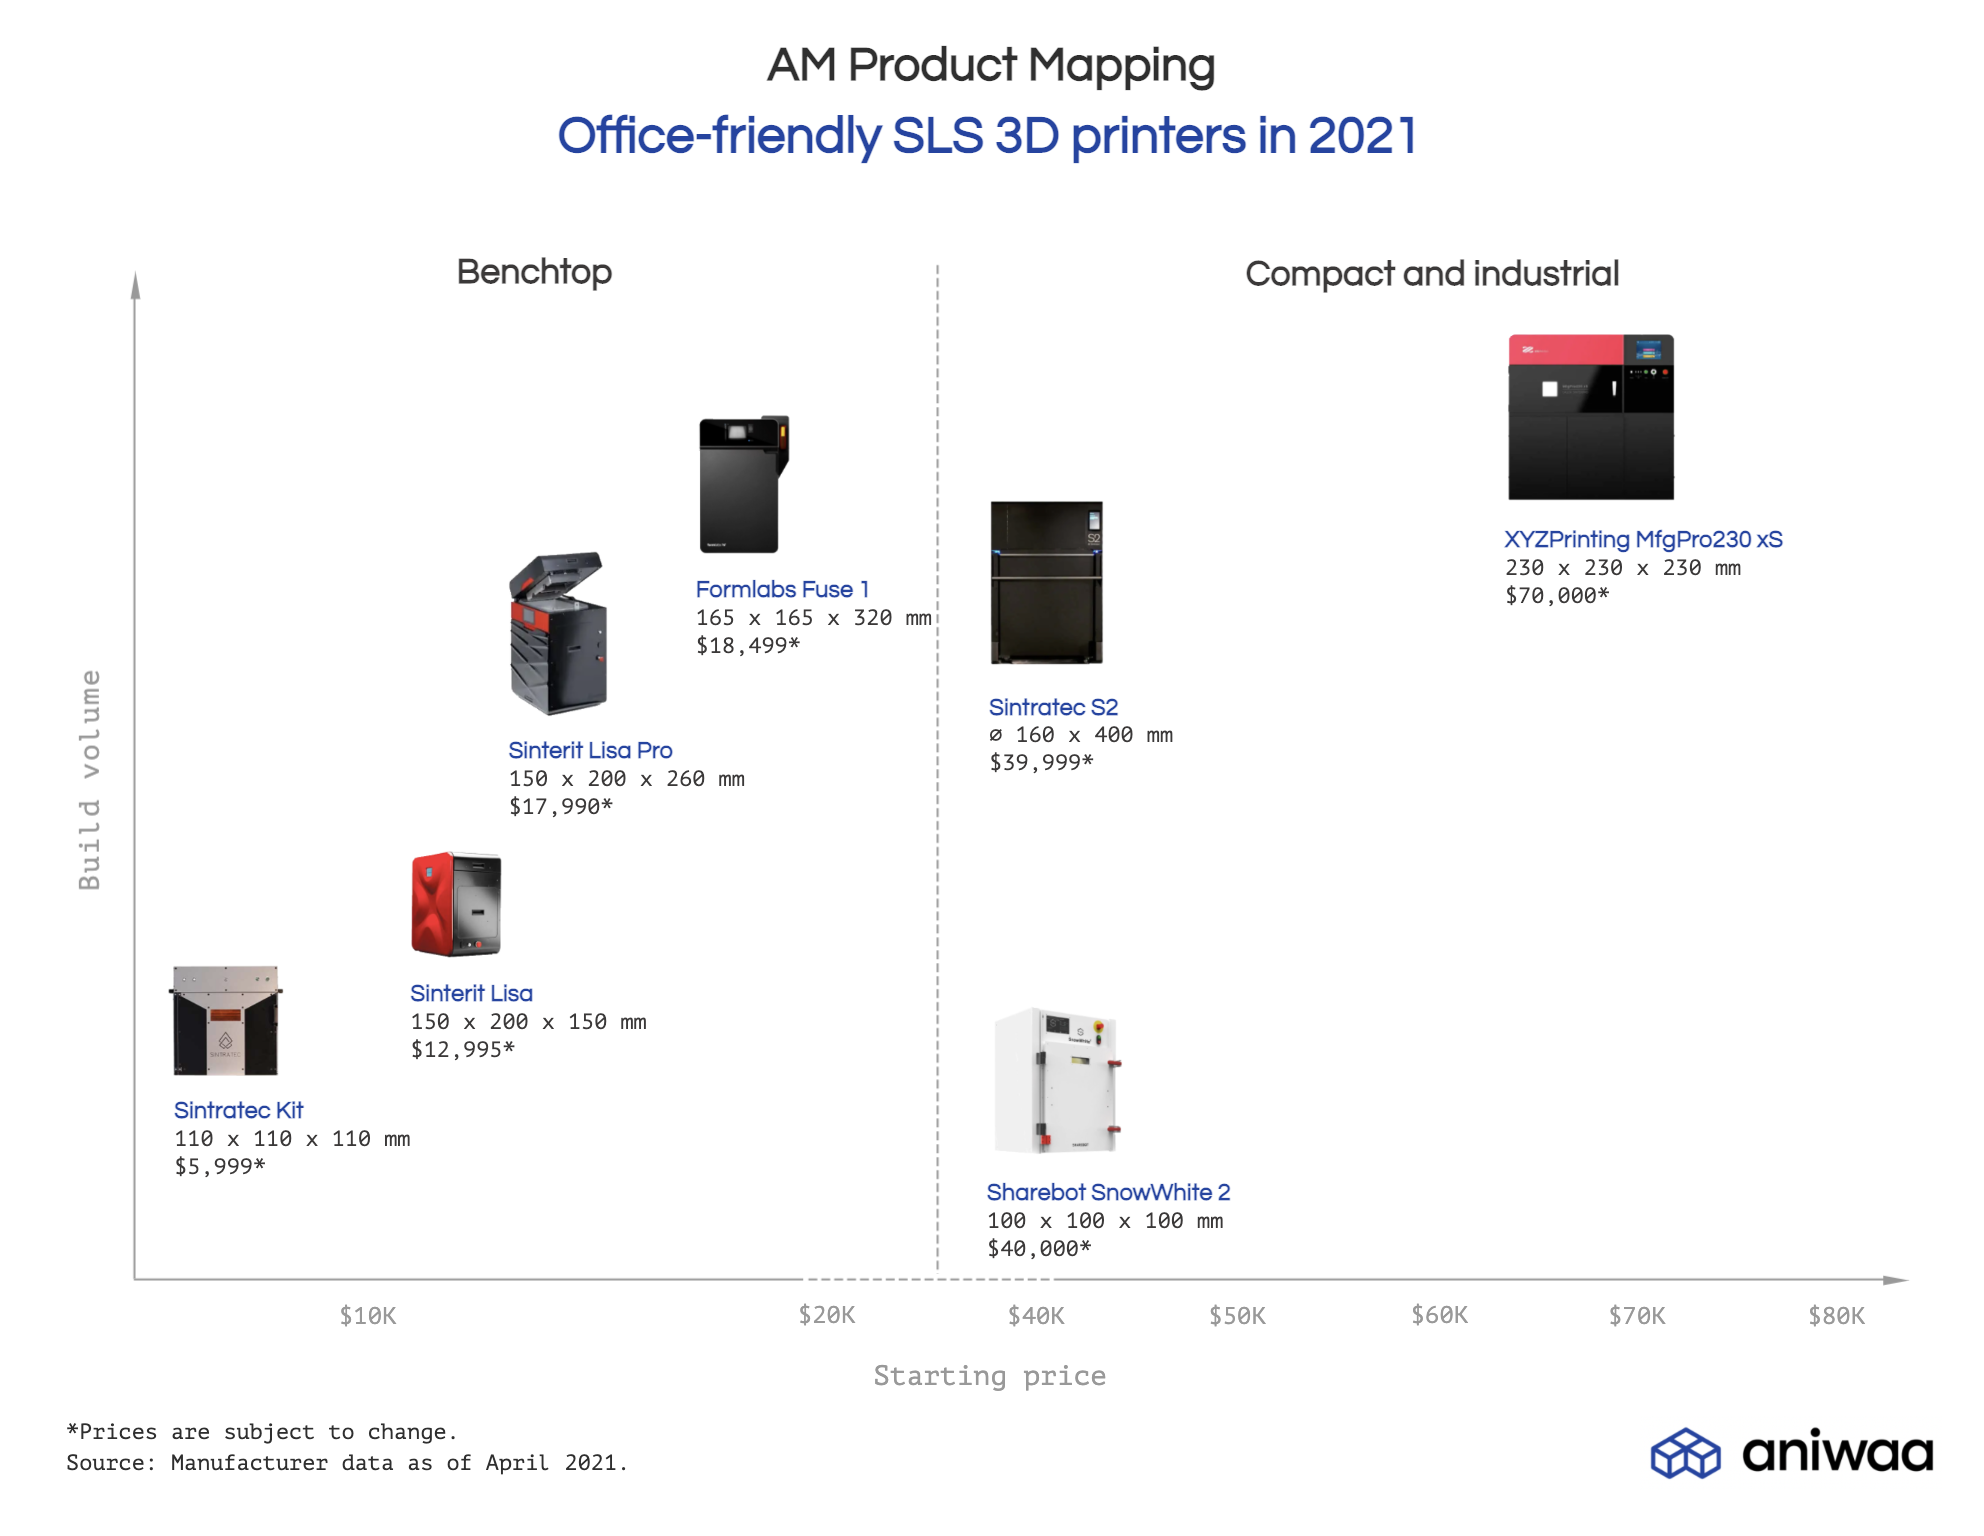 Product mapping 2021 office-friendly SLS 3D printers